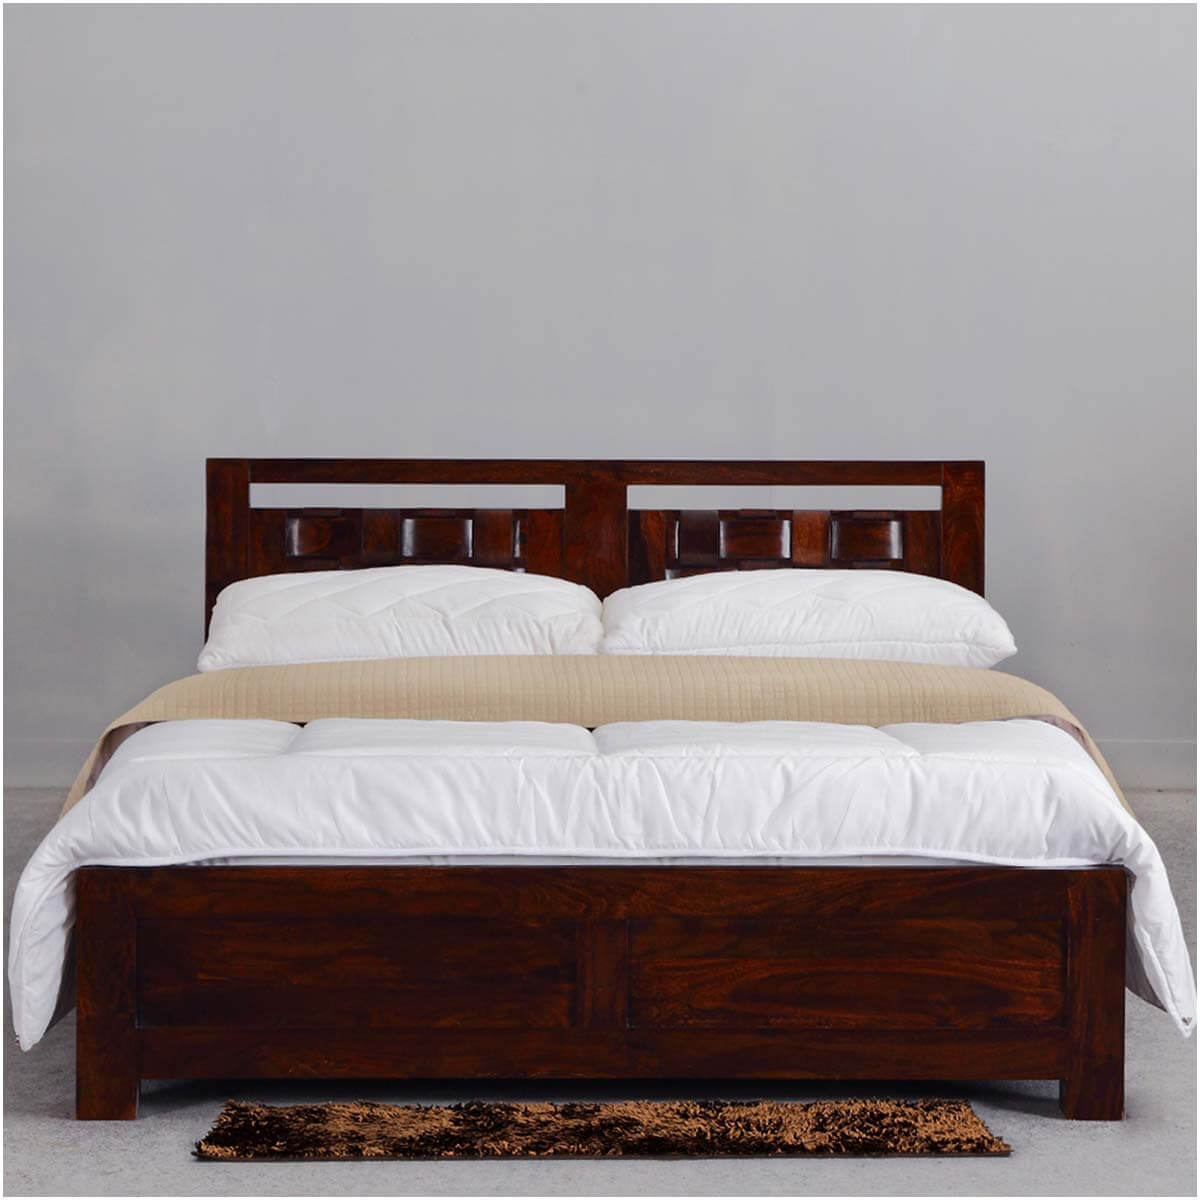 arrivals modern rustic minnesota solid wood platform bed w headboard